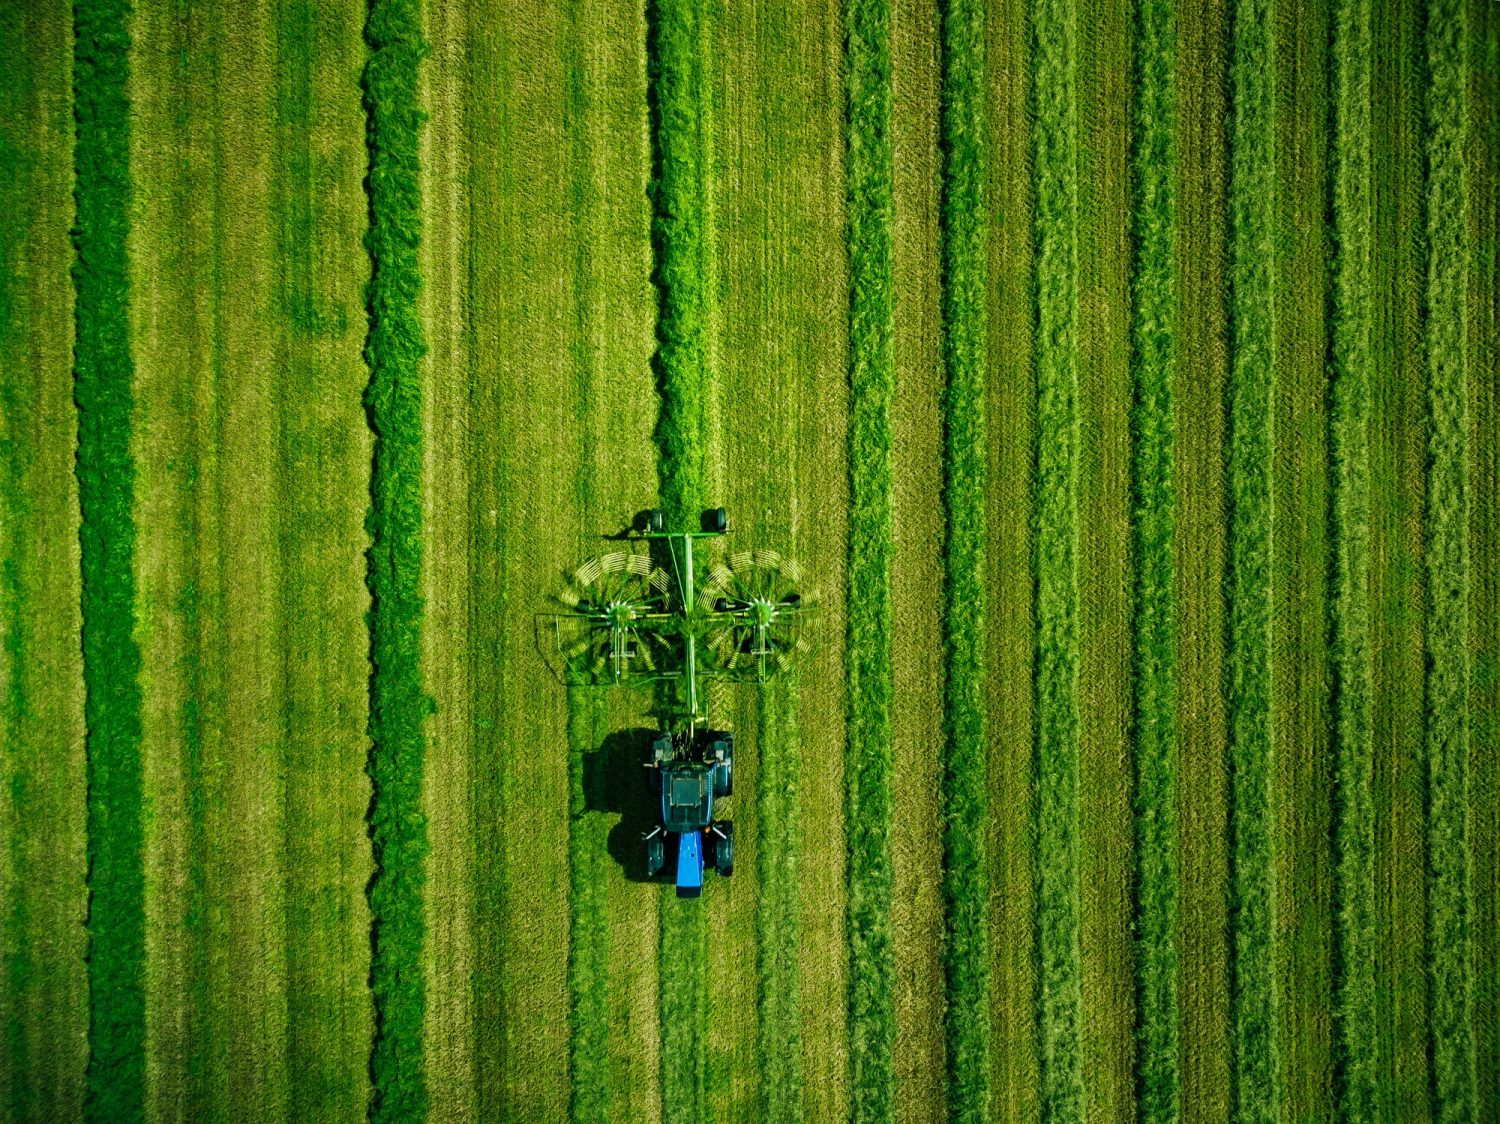 Aerial view of Tractor mowing green field in Finland.